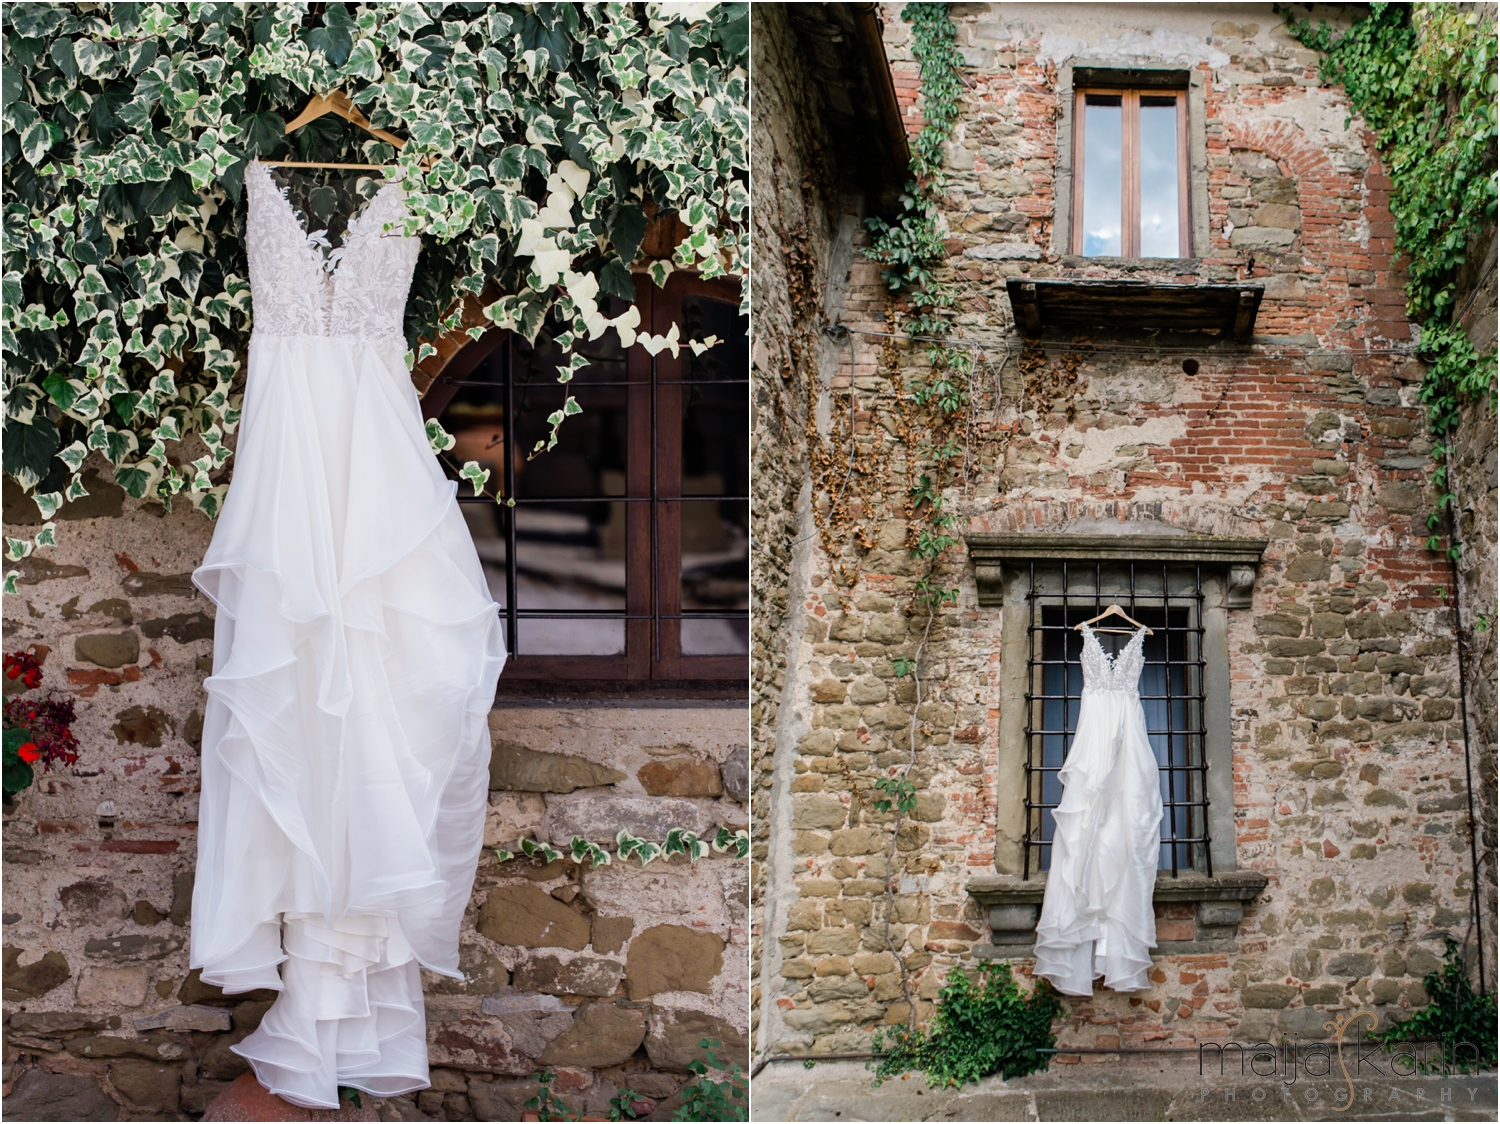 Castelvecchi-Tuscany-Wedding-Maija-Karin-Photography_0003.jpg